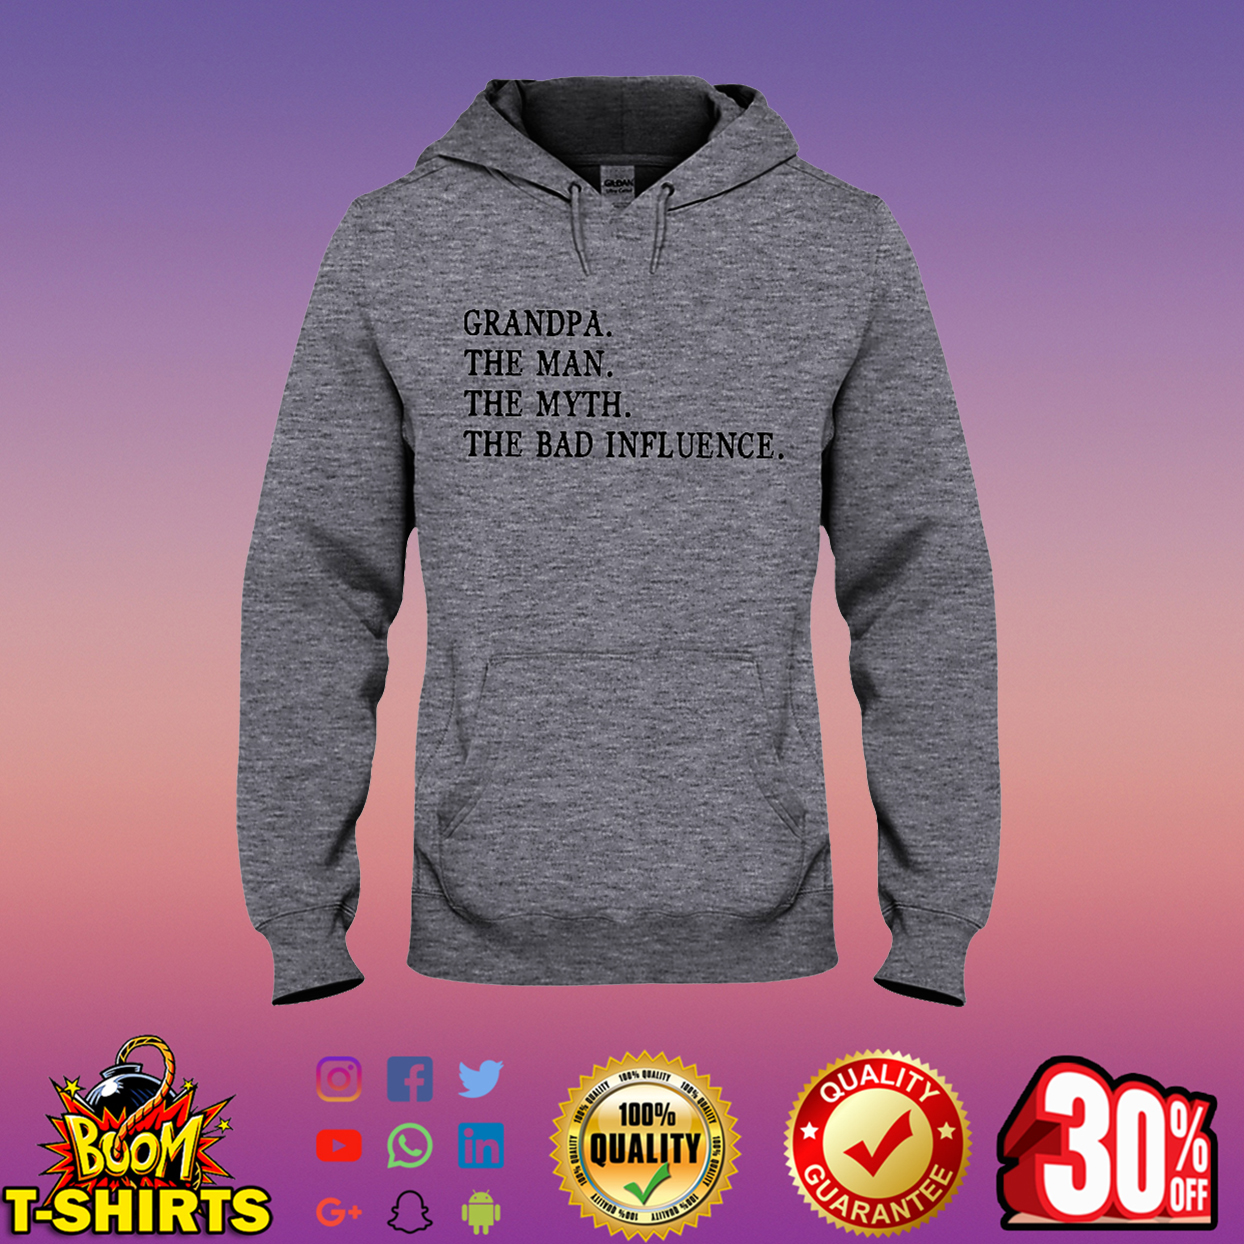 Grandpa the man the myth the bad influence hooded sweatshirt